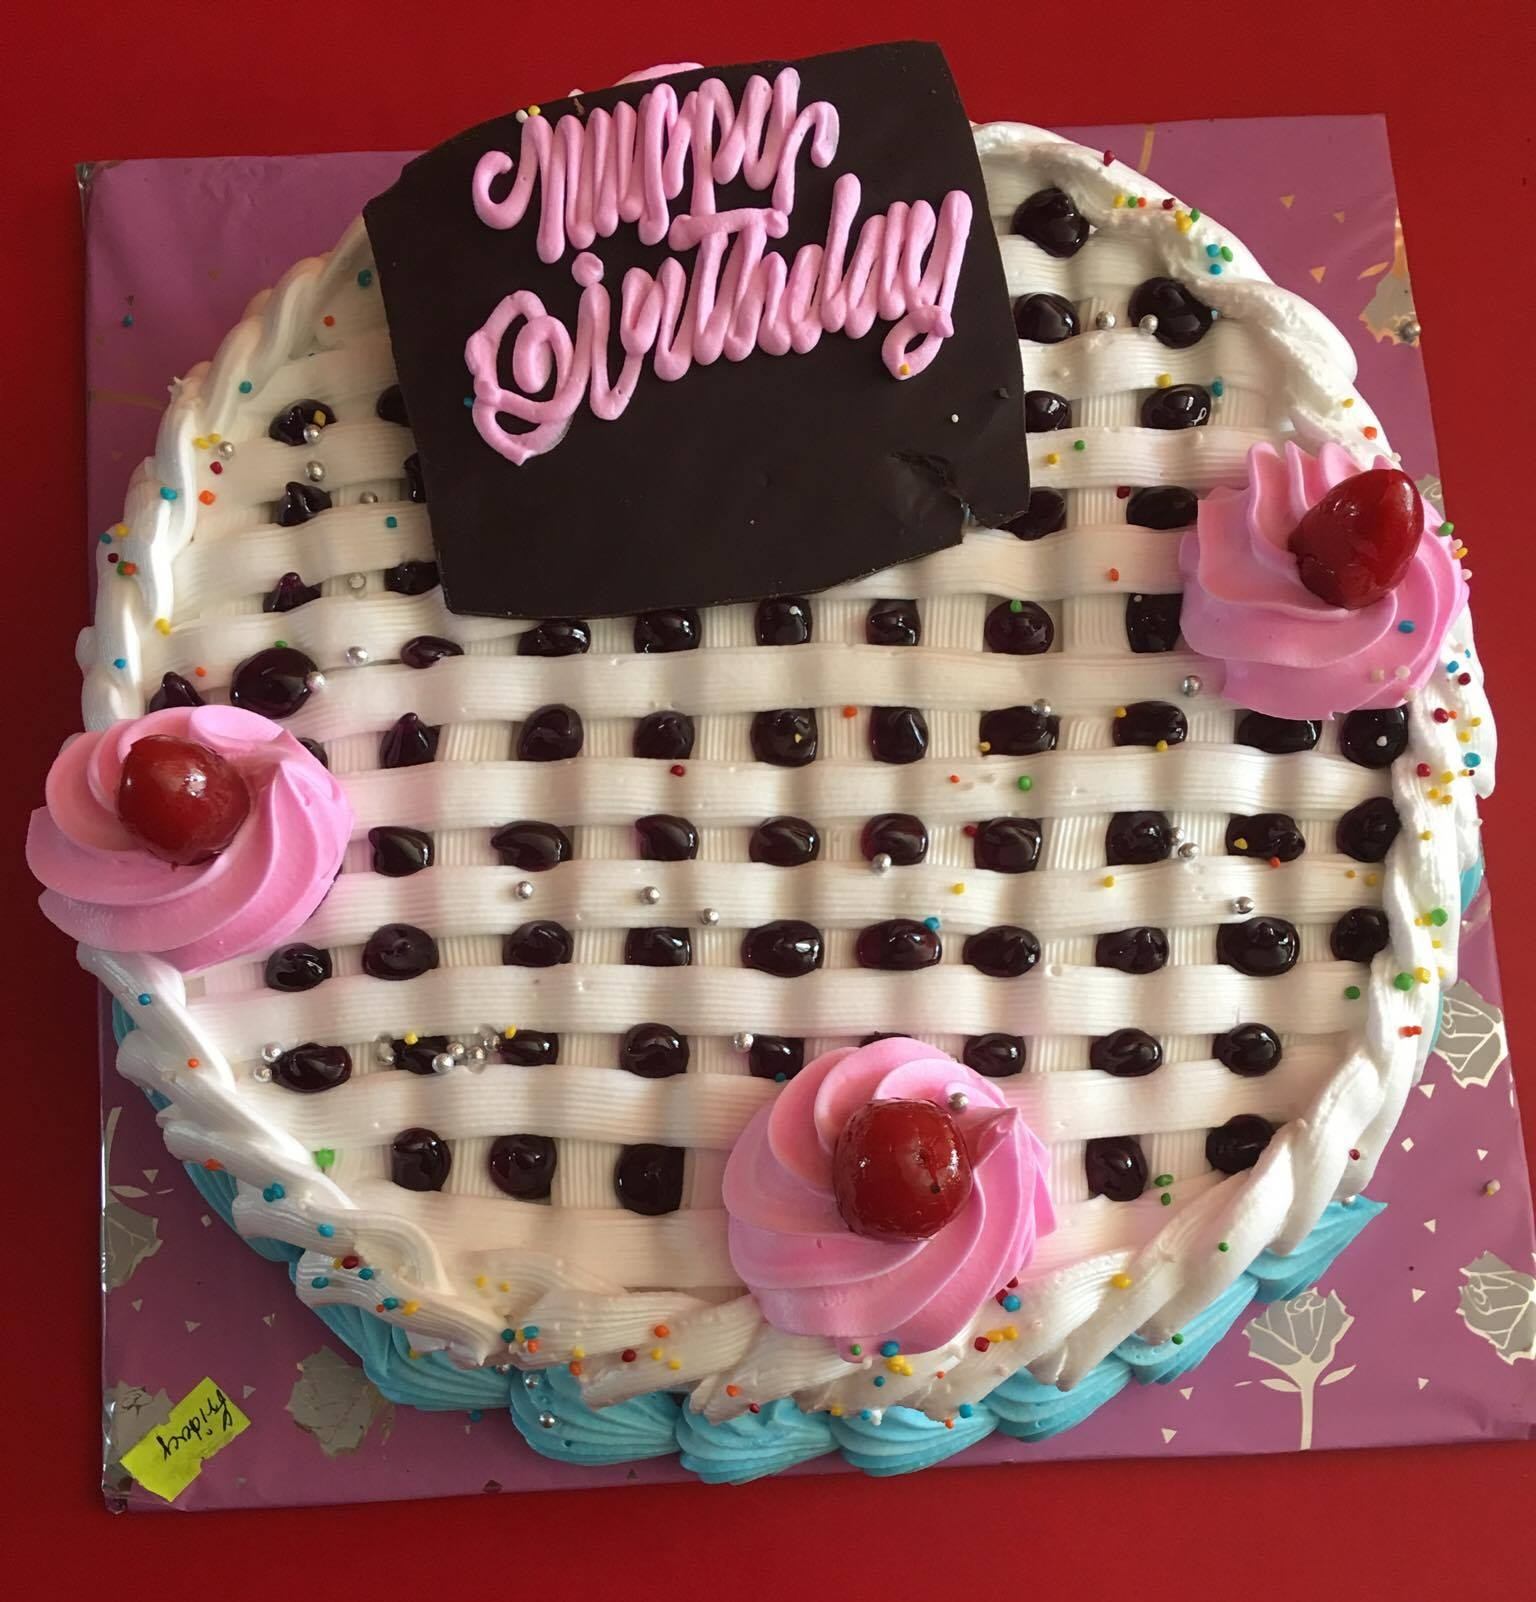 Happy Birthday Cake Checker 1001 Online Pokhara Cakes And Bakeries